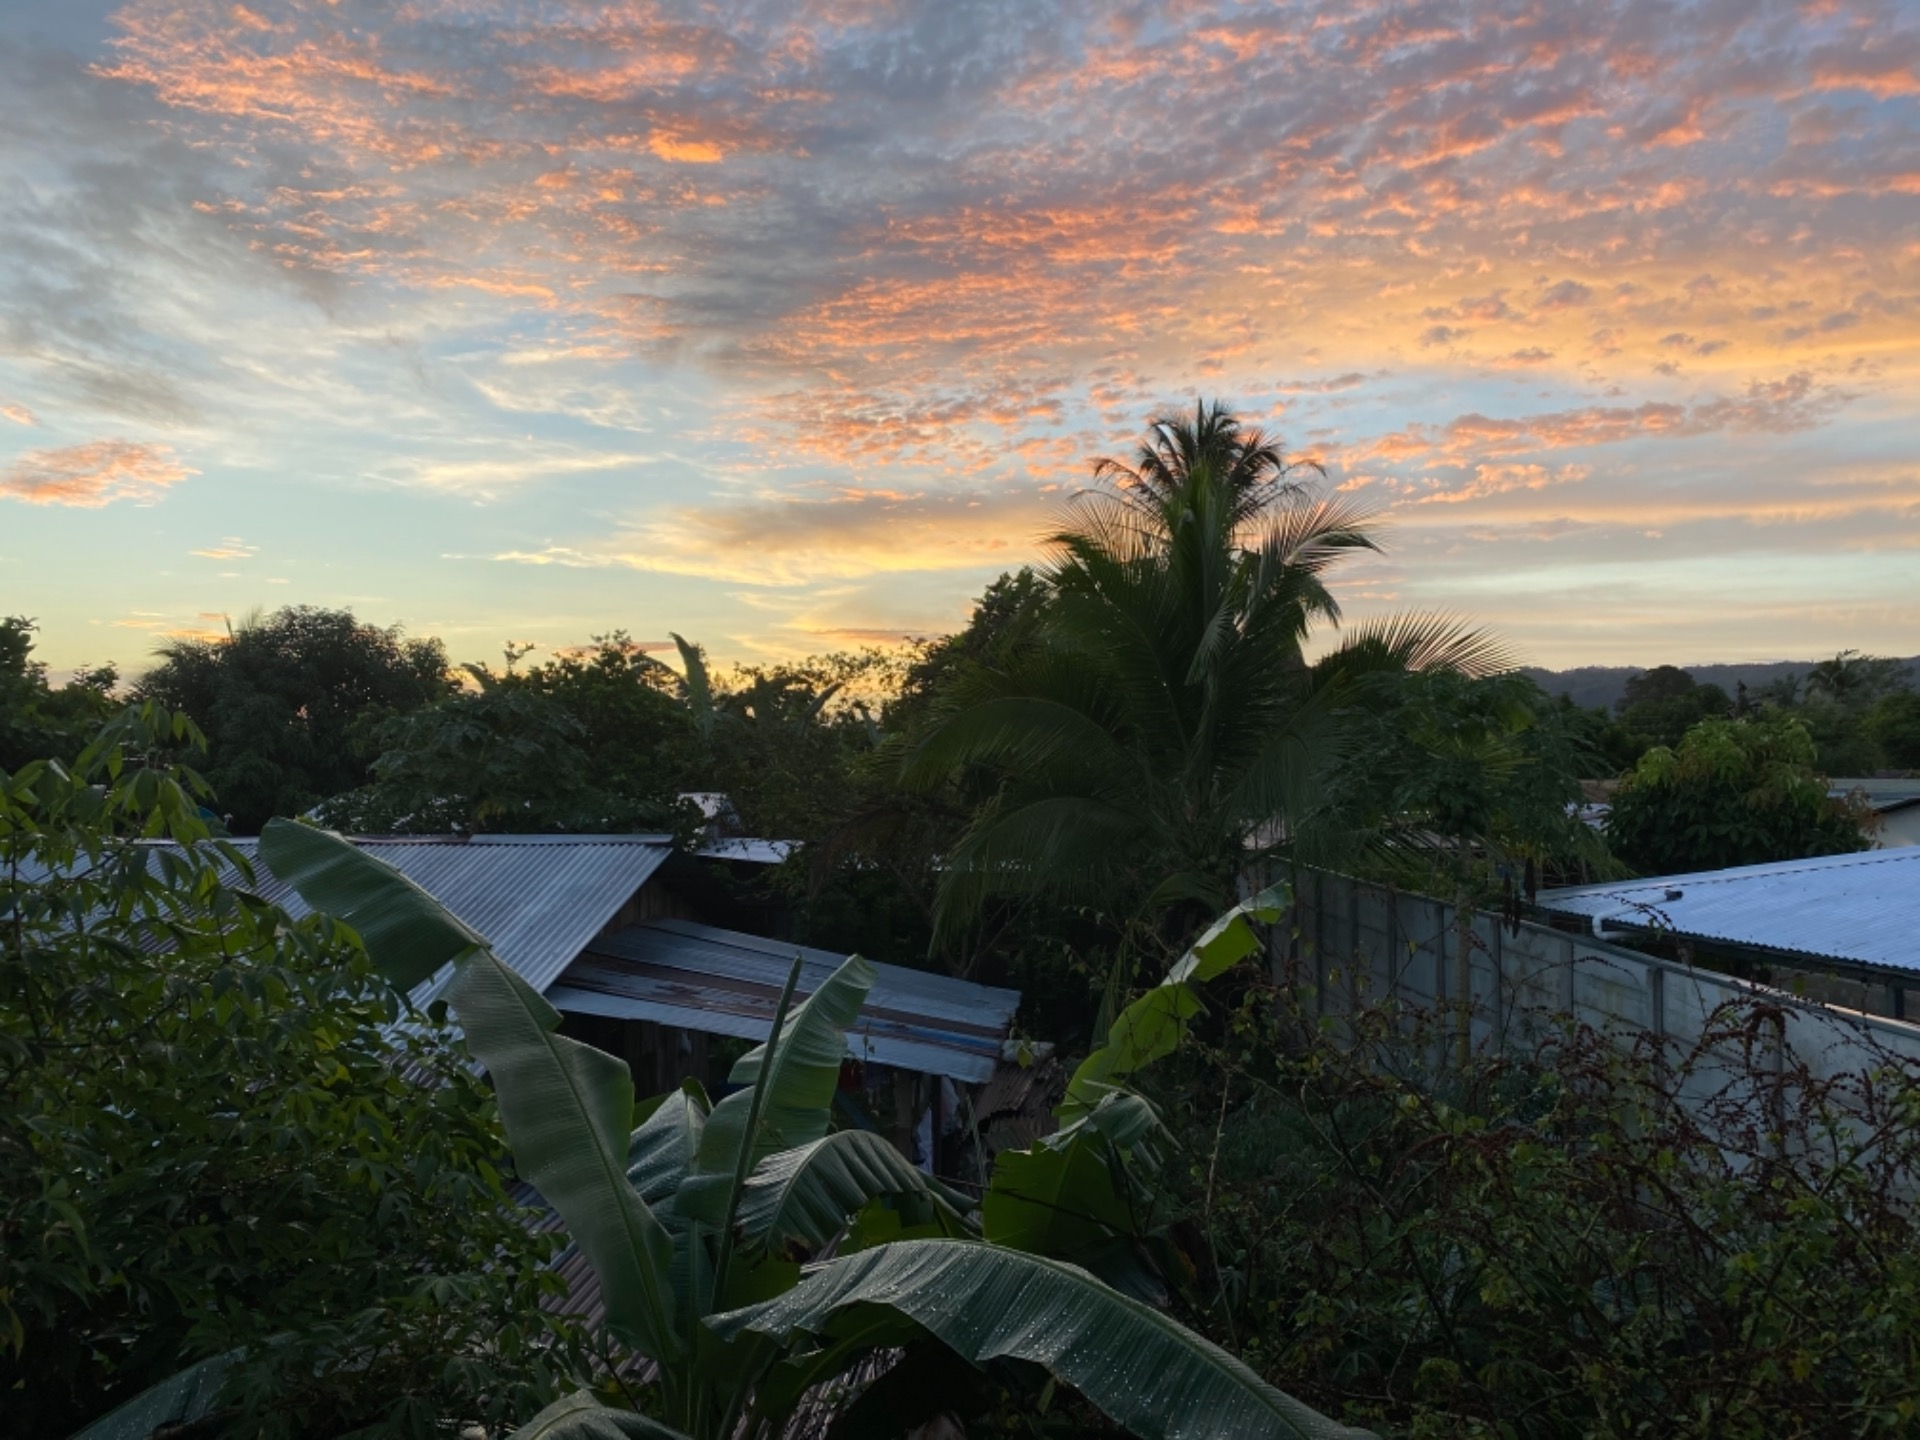 Luther Memorial Church - Good Morning from Costa Rica